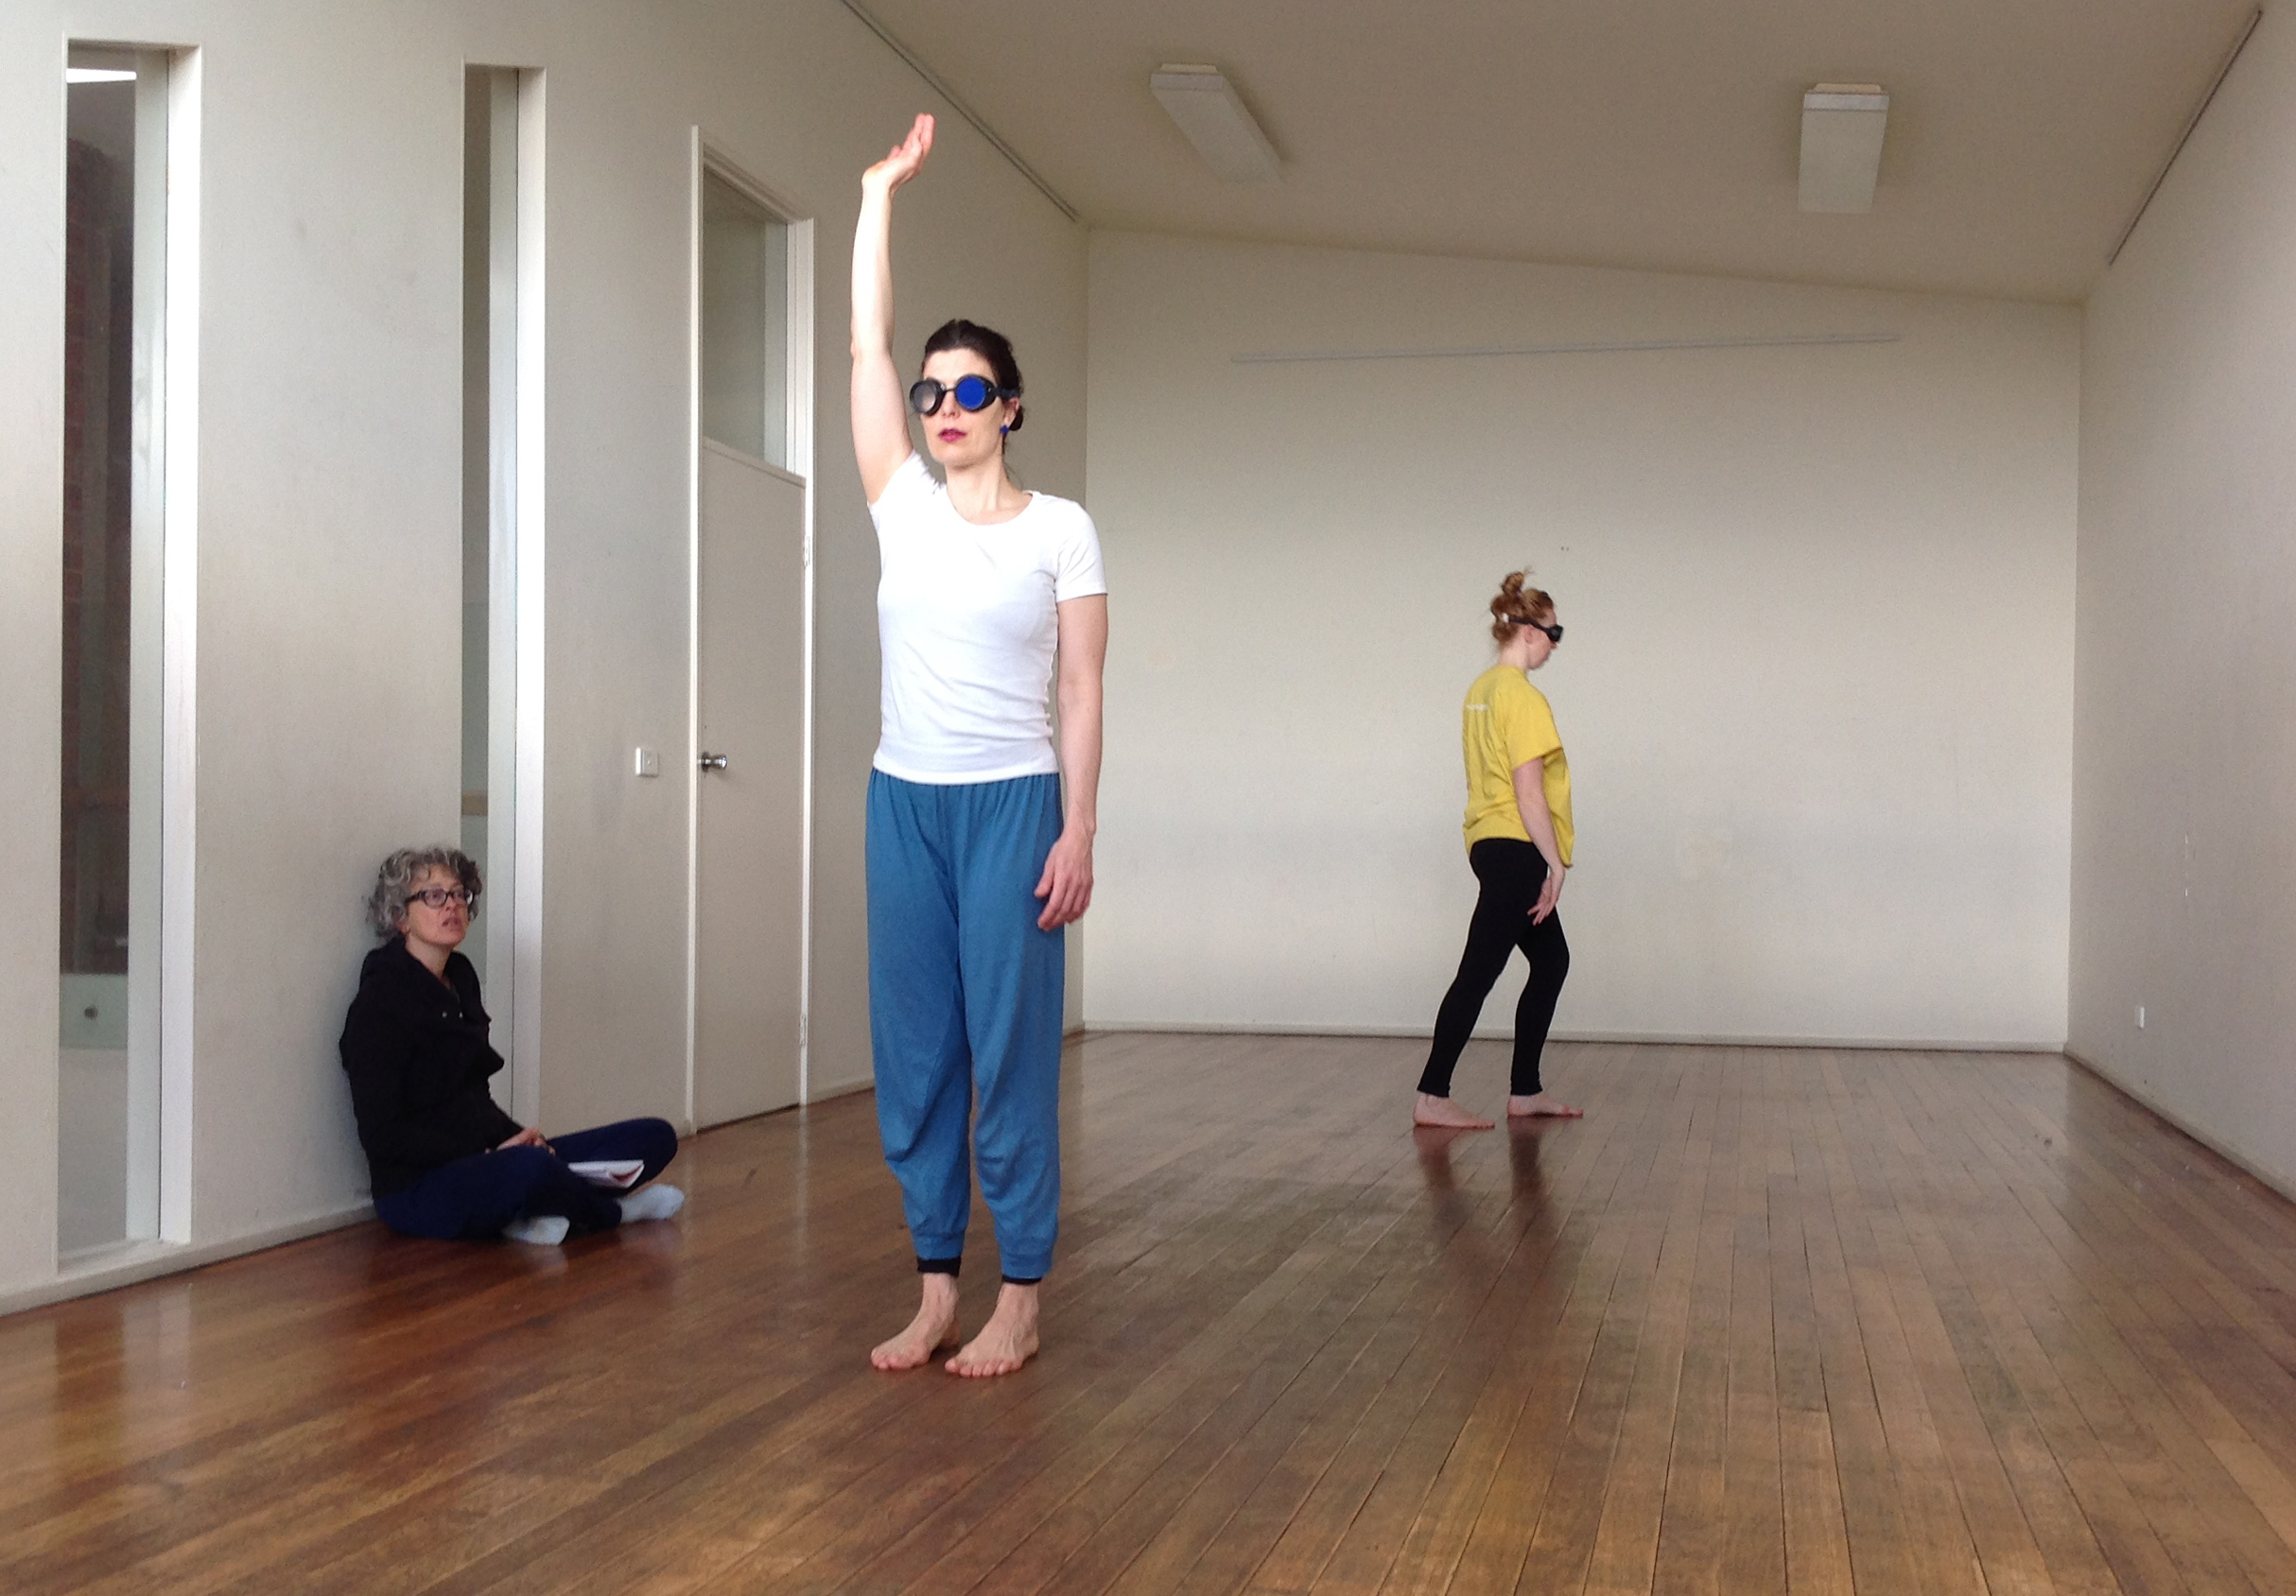 Within studio research, the available sensorial feedback is altered with the use of goggles that simulate various limits in visual information. The dancers work with different types and degrees of occlusion, improvising and repeating known and learnt dance material. Alterations in effort within these variations are observed, as well as the perception of relative space in relationship to memory.